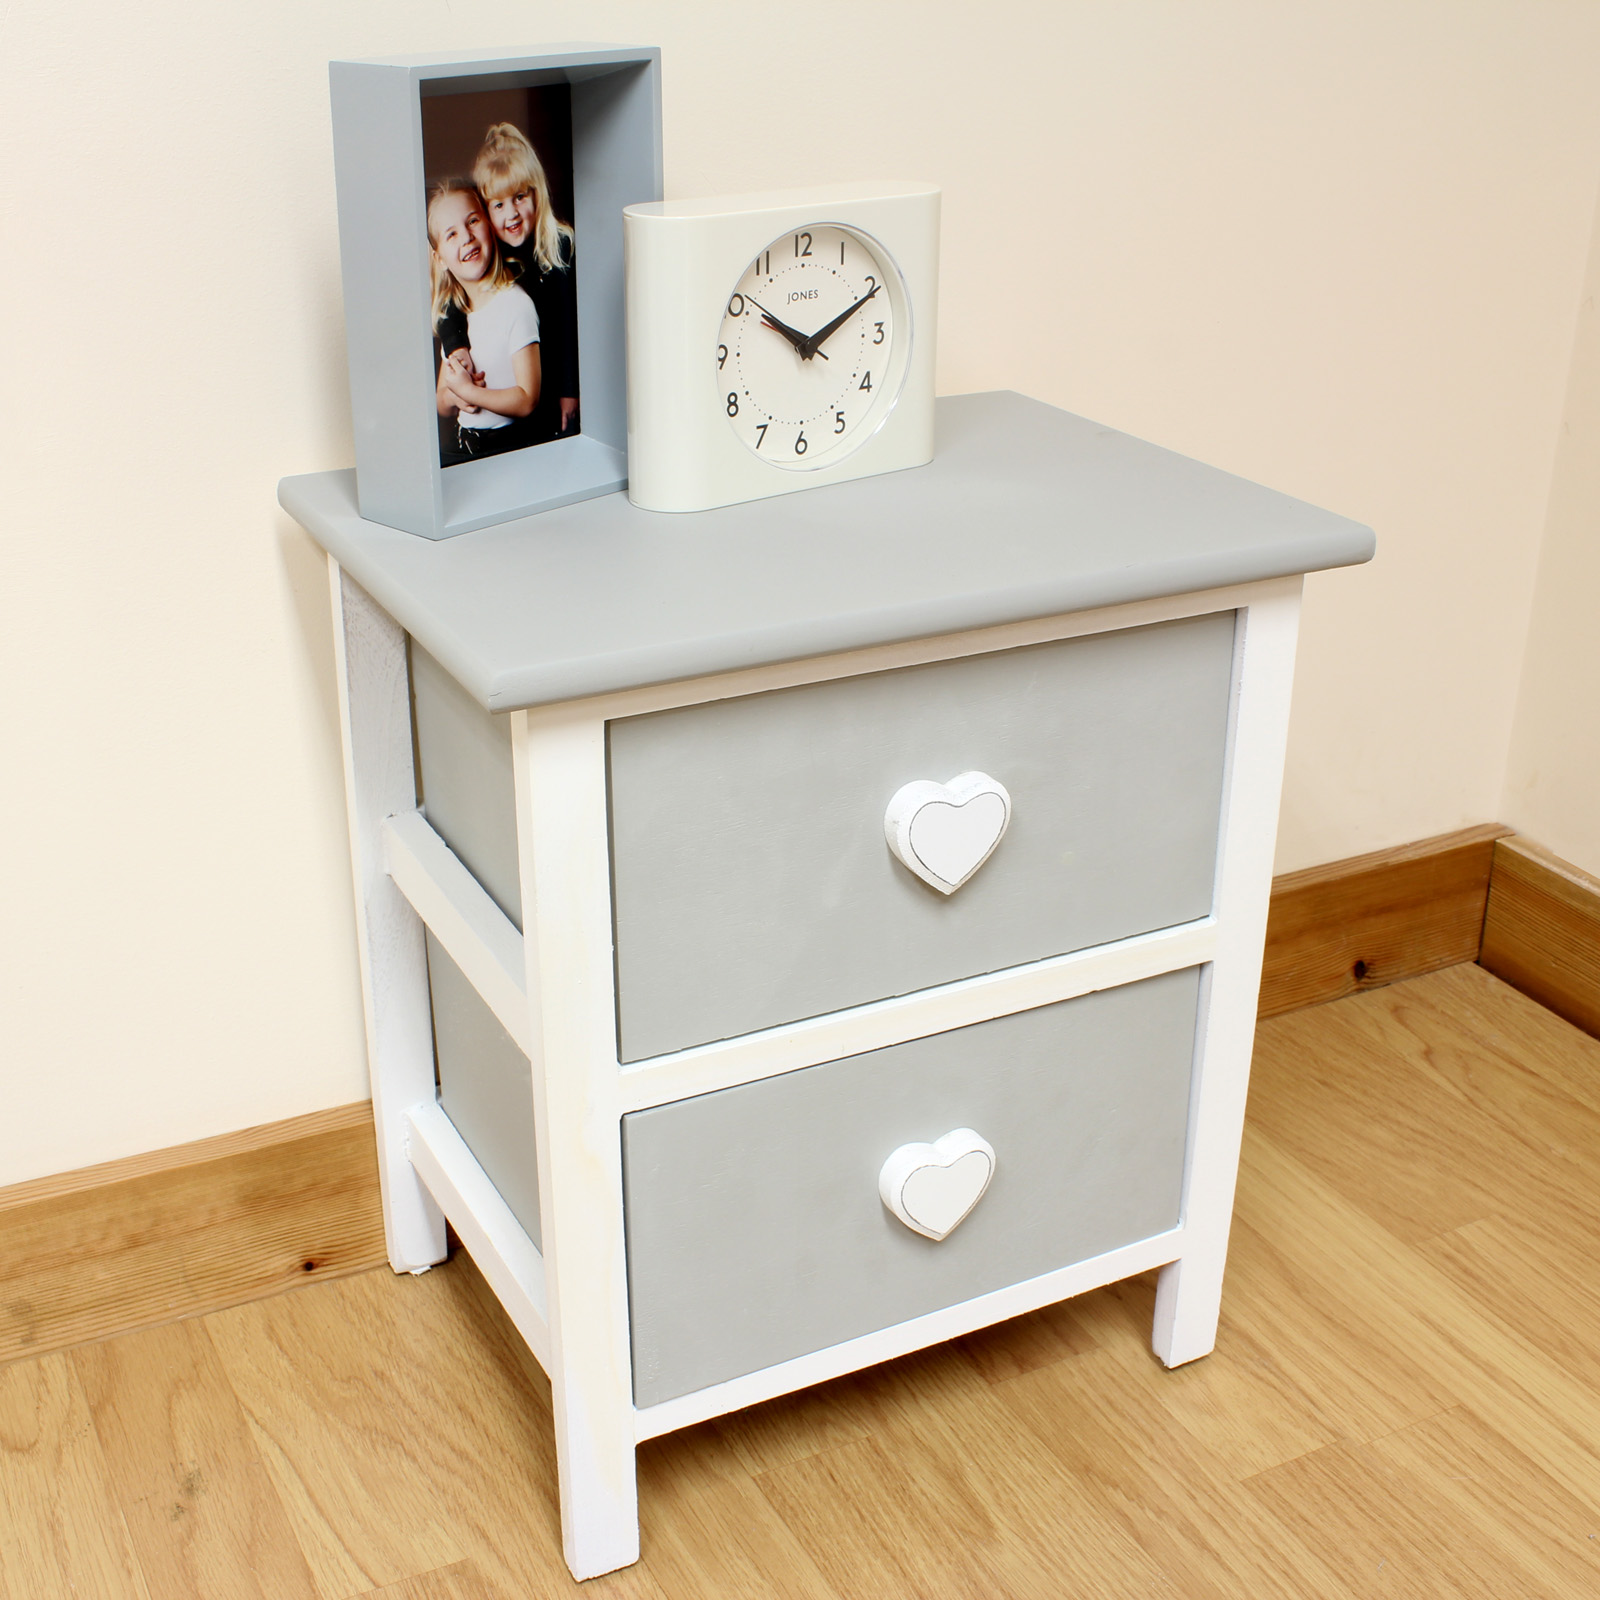 Toddler Bedside Table Rustic Bedside Girls Childrens Kids Table With Drawers